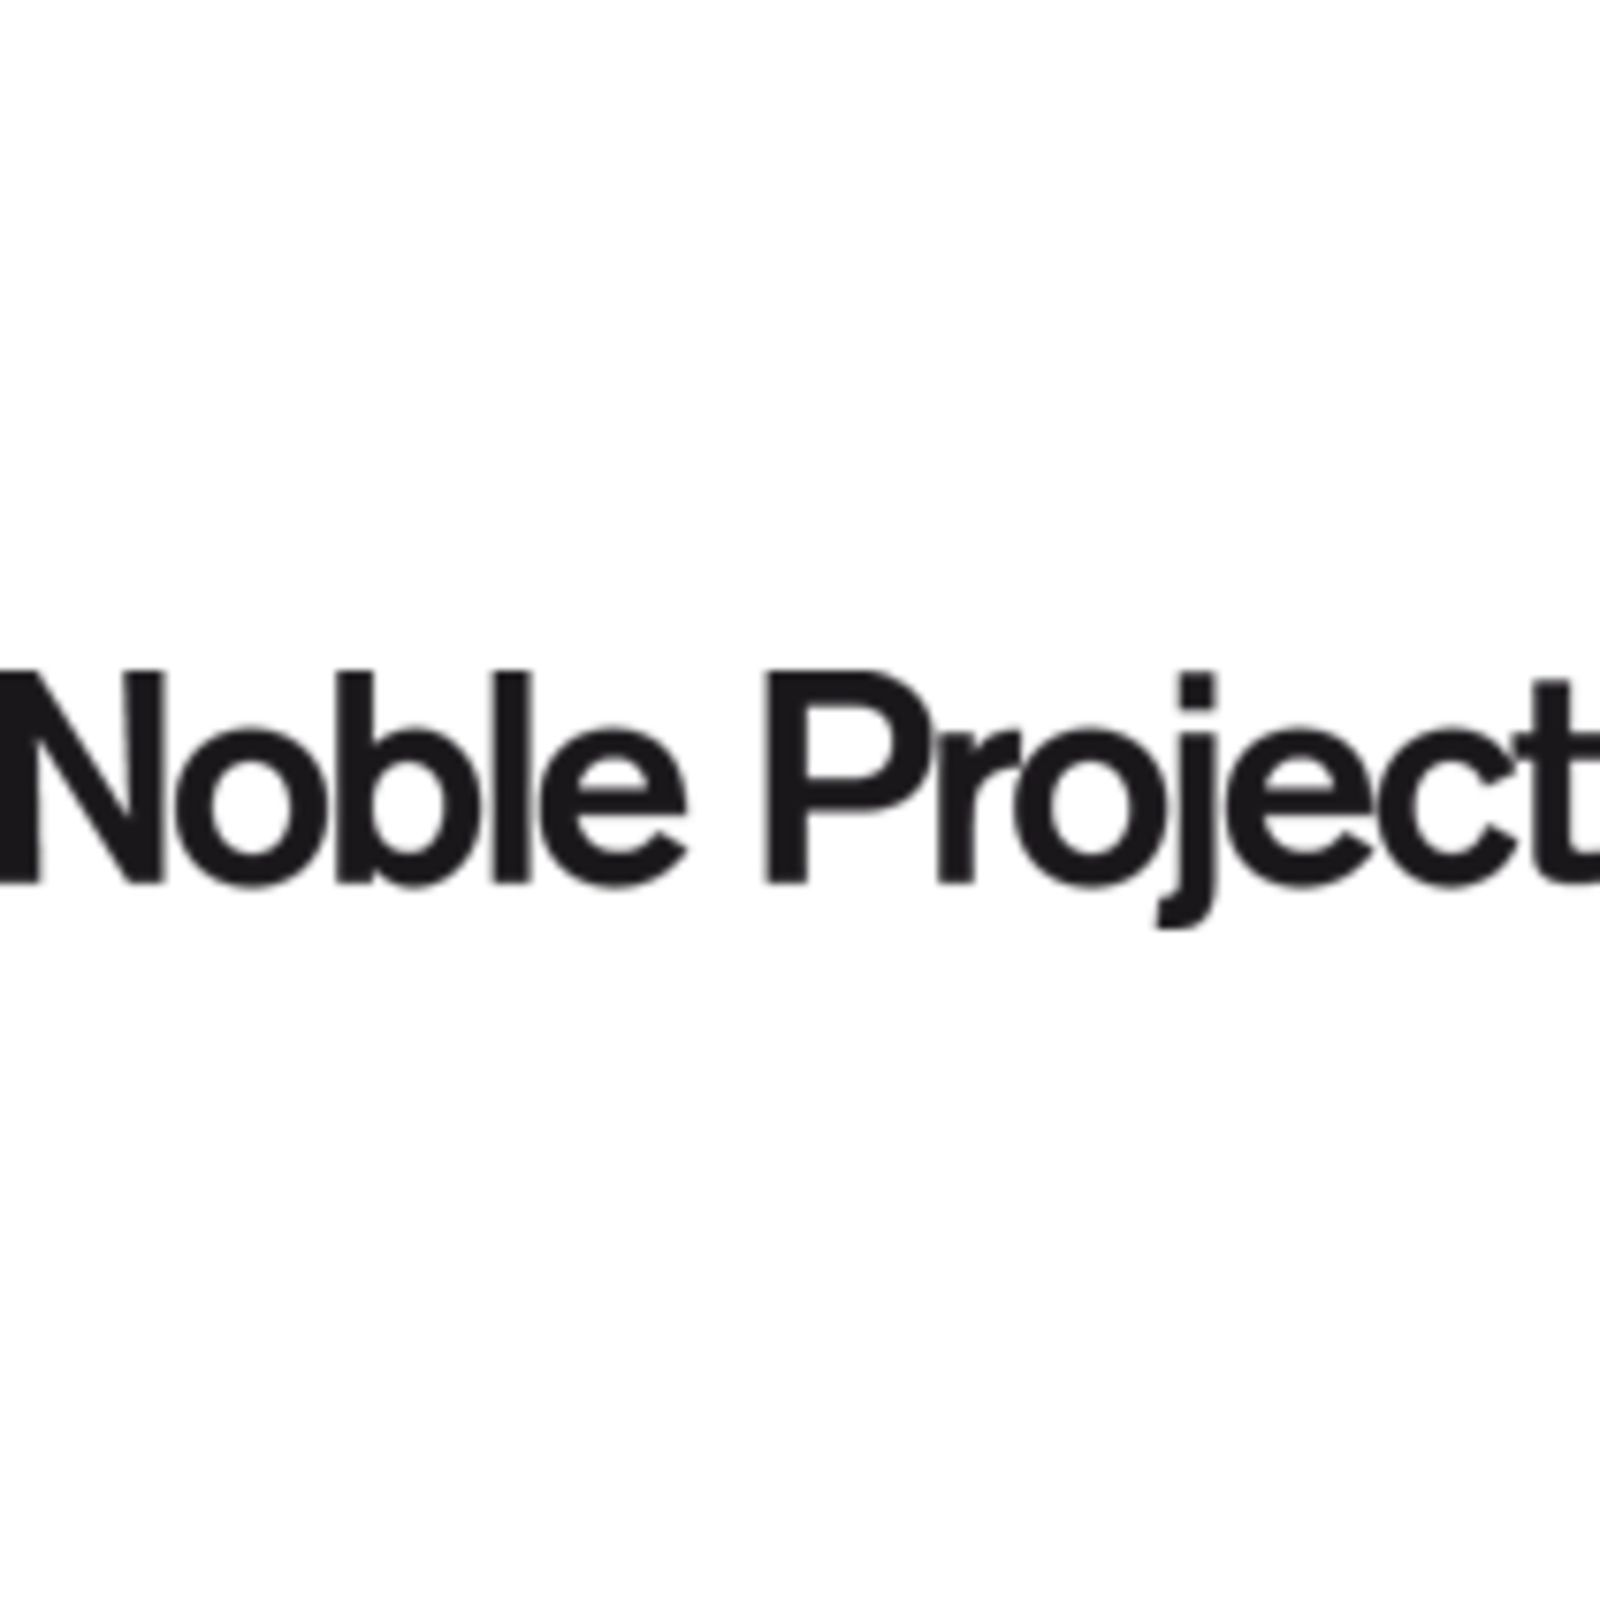 Noble Project